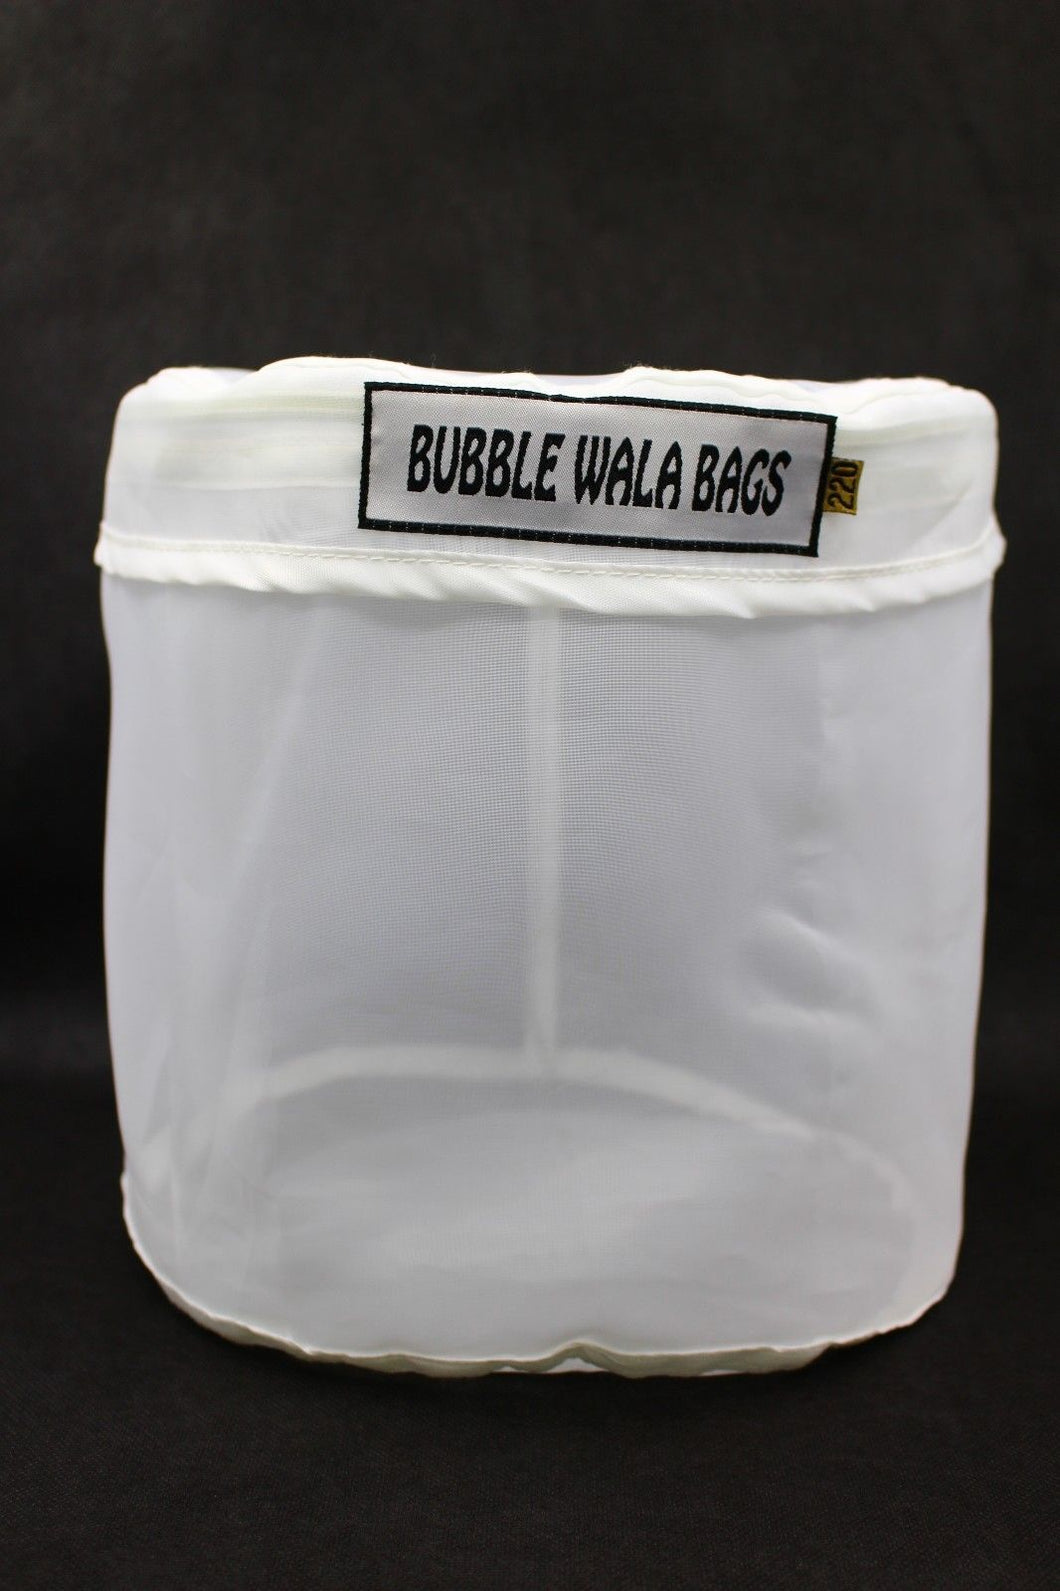 5 Gallon - All Mesh Zipper bag